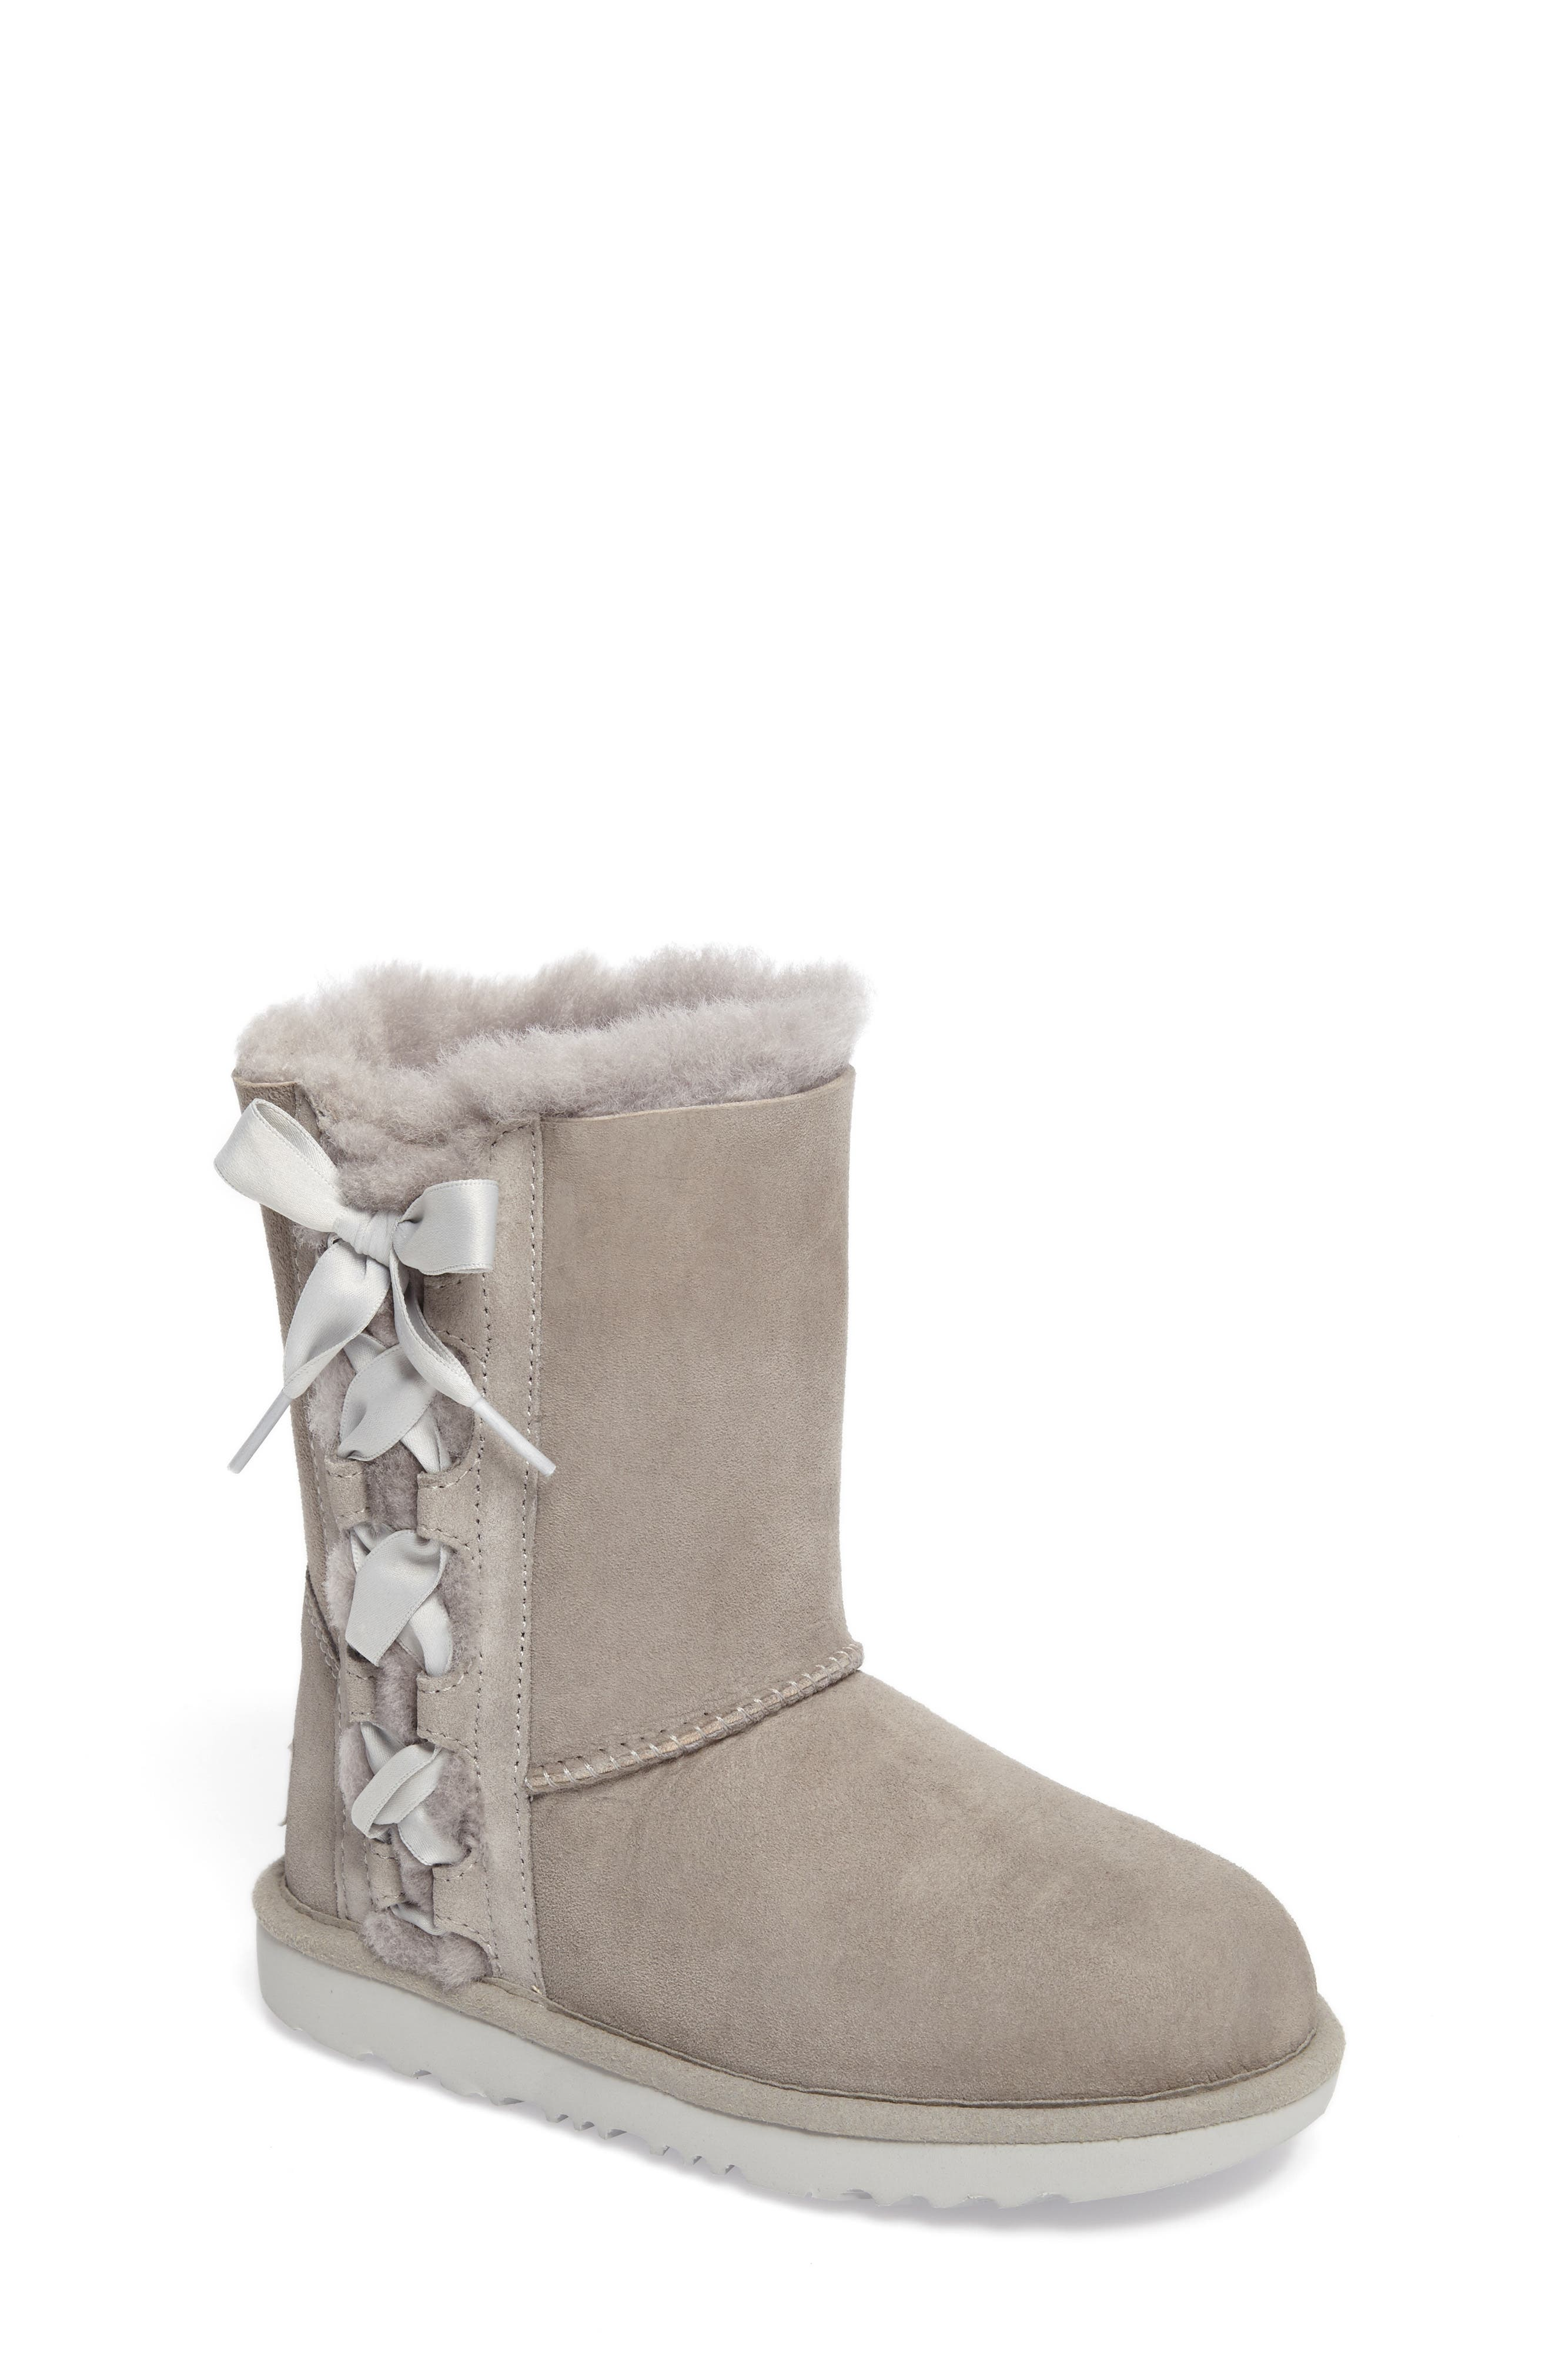 Alternate Image 1 Selected - UGG® Pala Water-Resistant Genuine Shearling Boot (Walker, Toddler, Little Kid & Big Kid)